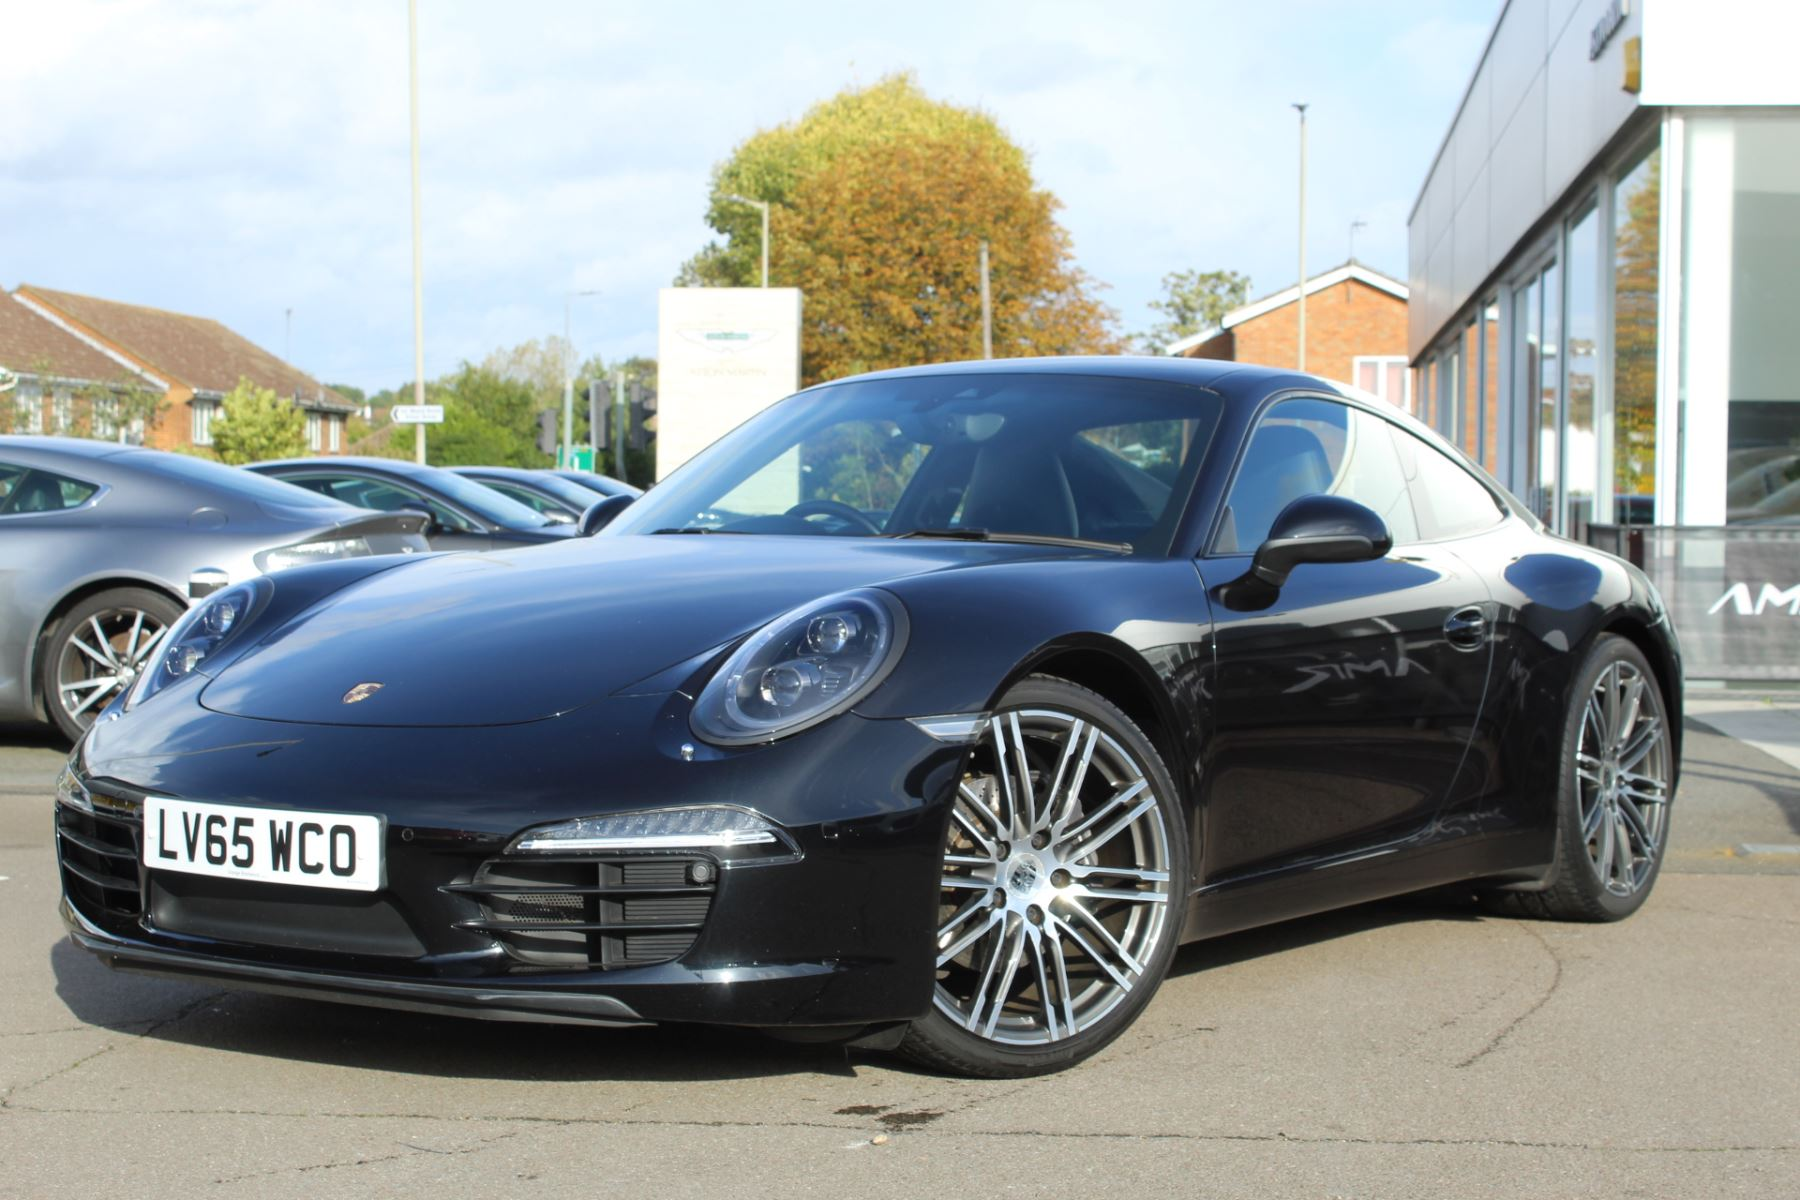 Porsche 911 Black Edition 2dr PDK 3.4 Automatic Coupe (2015) image